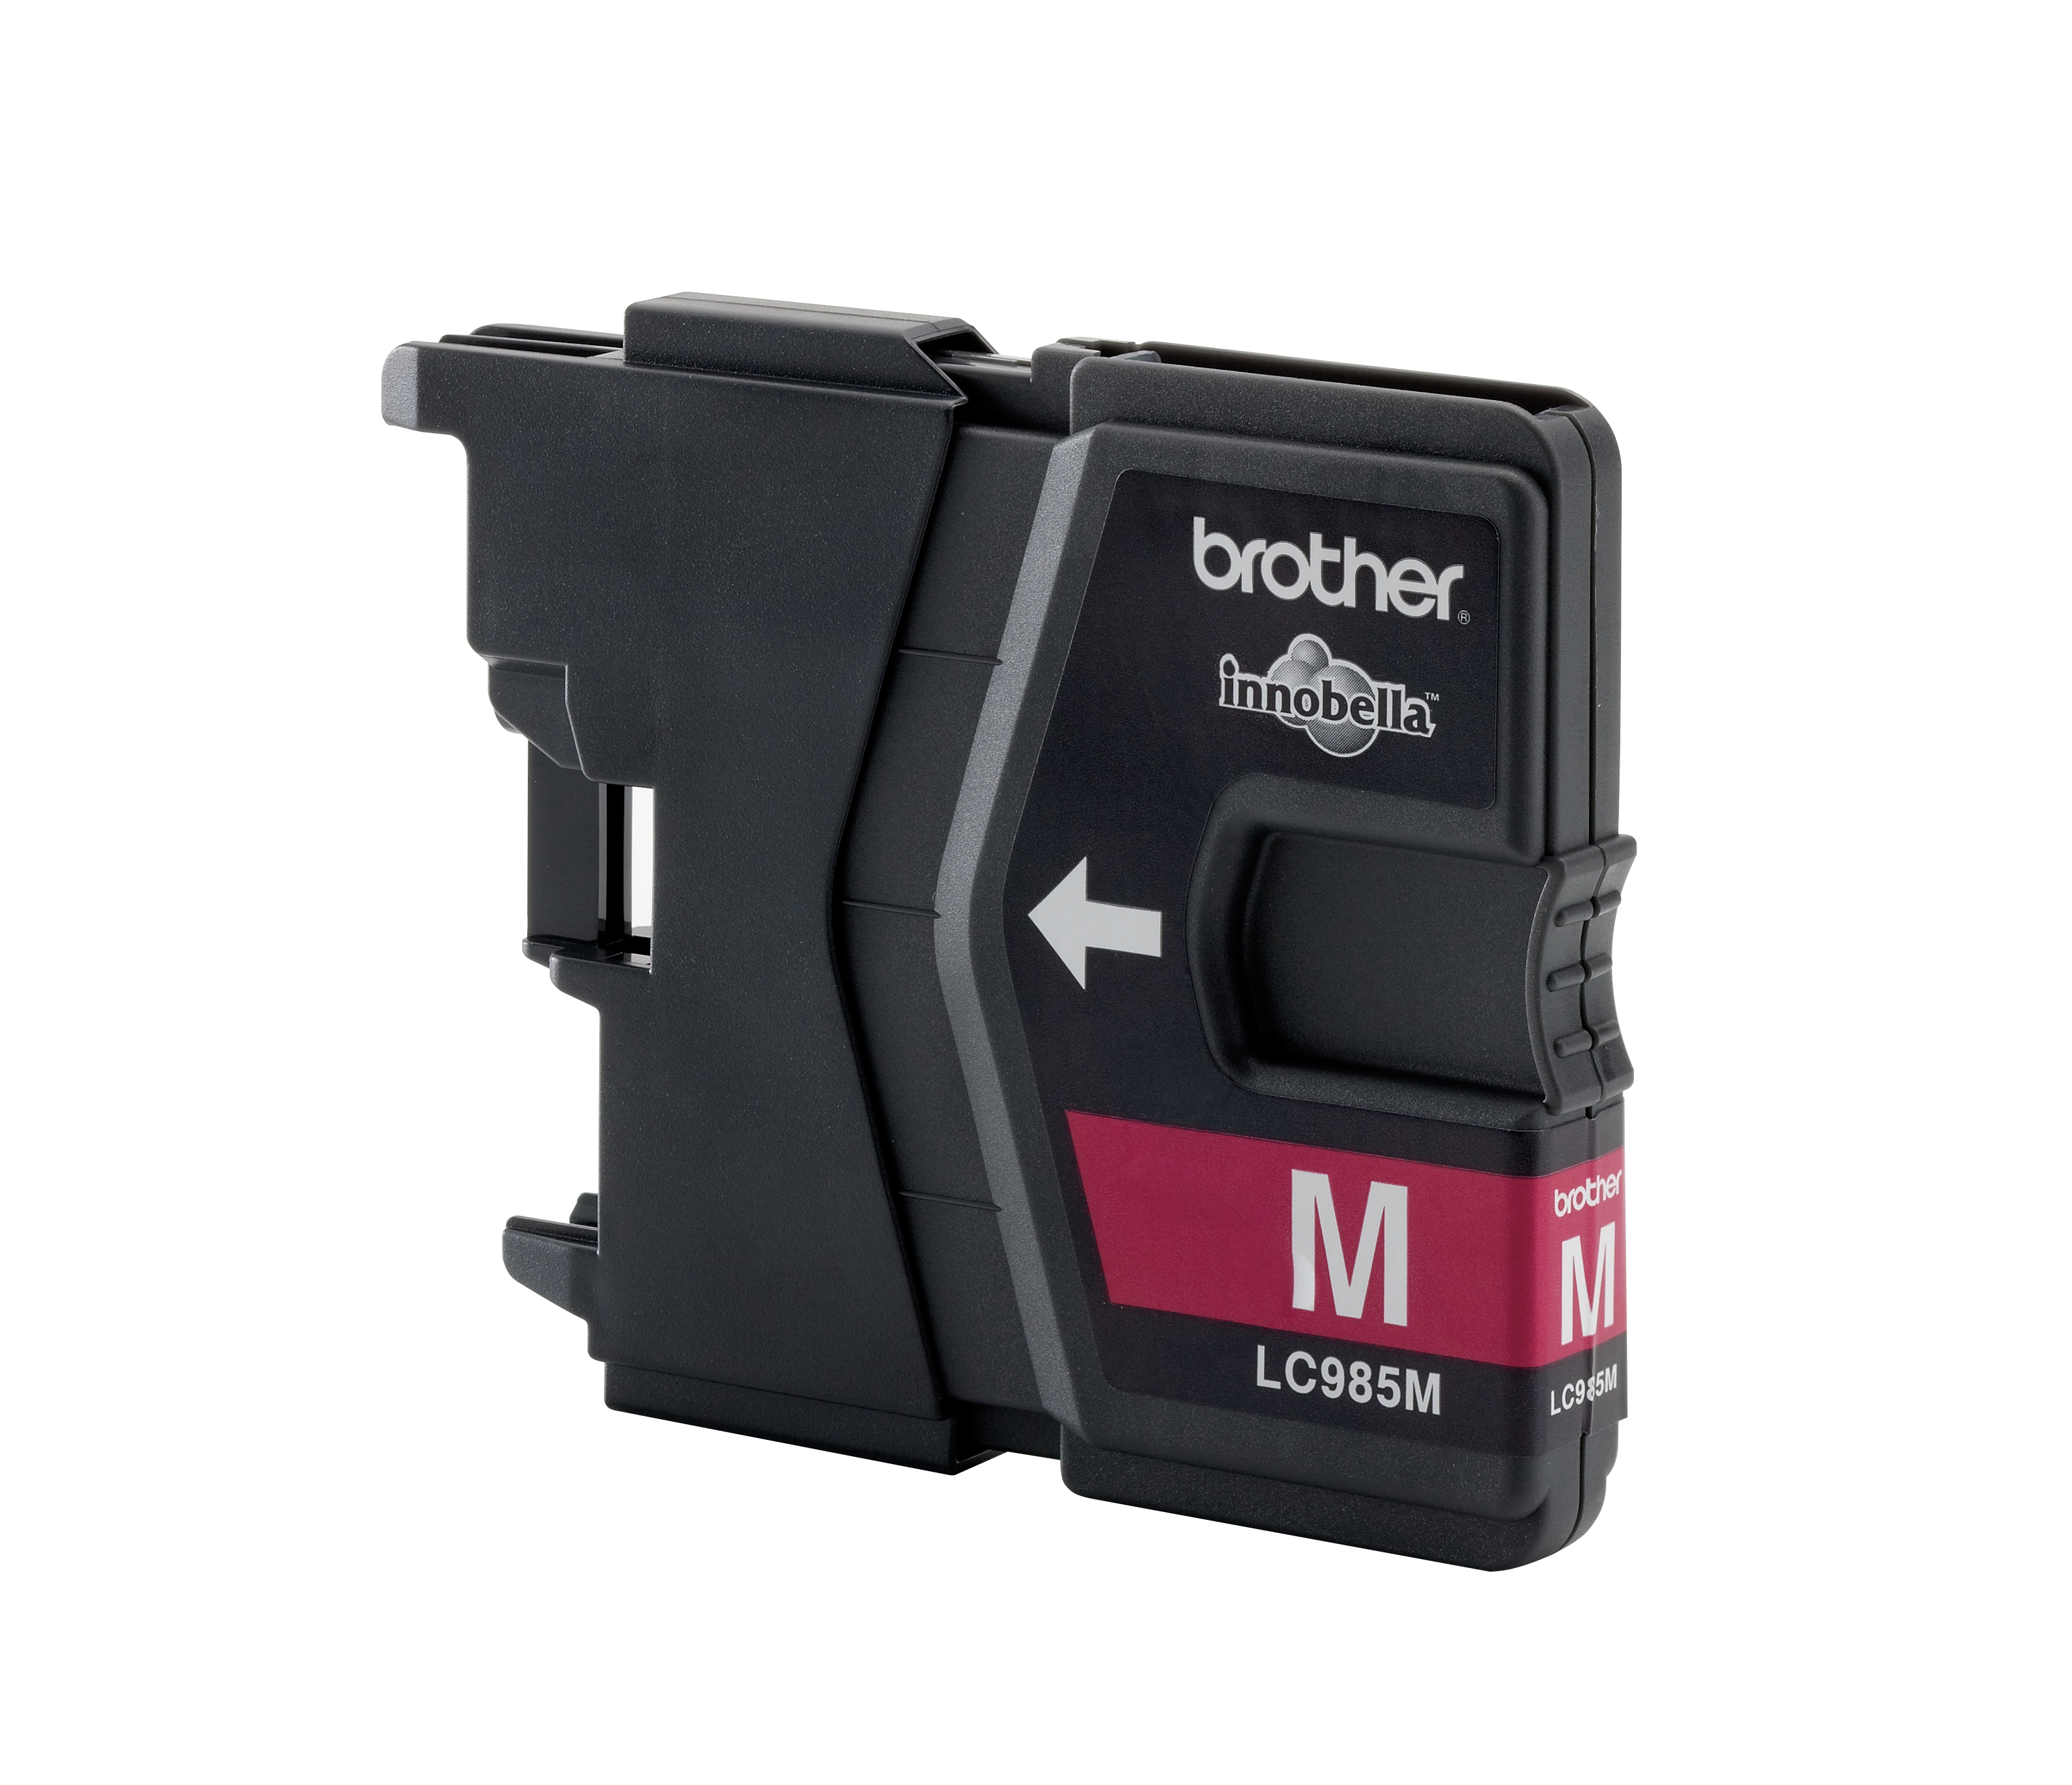 Image of Brother Ink Cartridge Lc985M Magenta 260 Pages